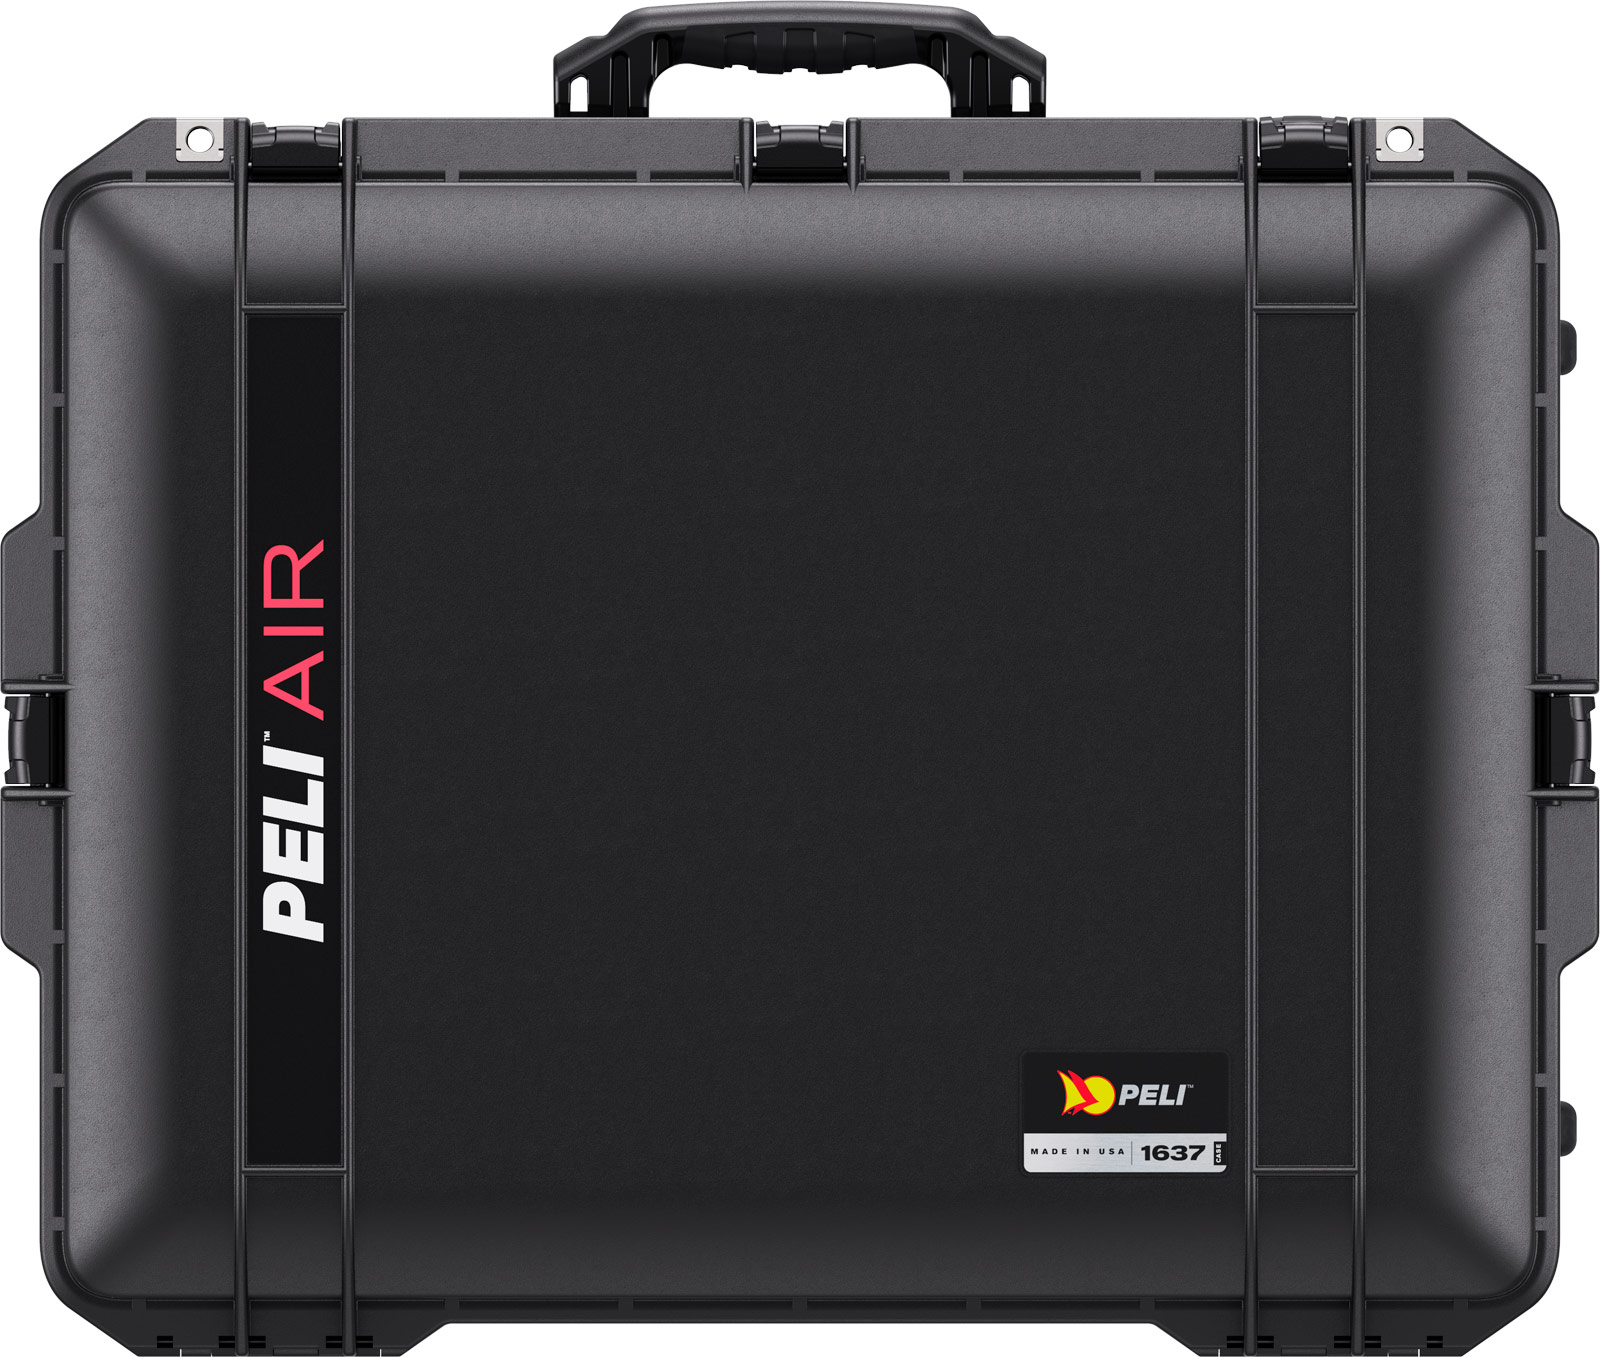 peli air cases deep case rolling travel